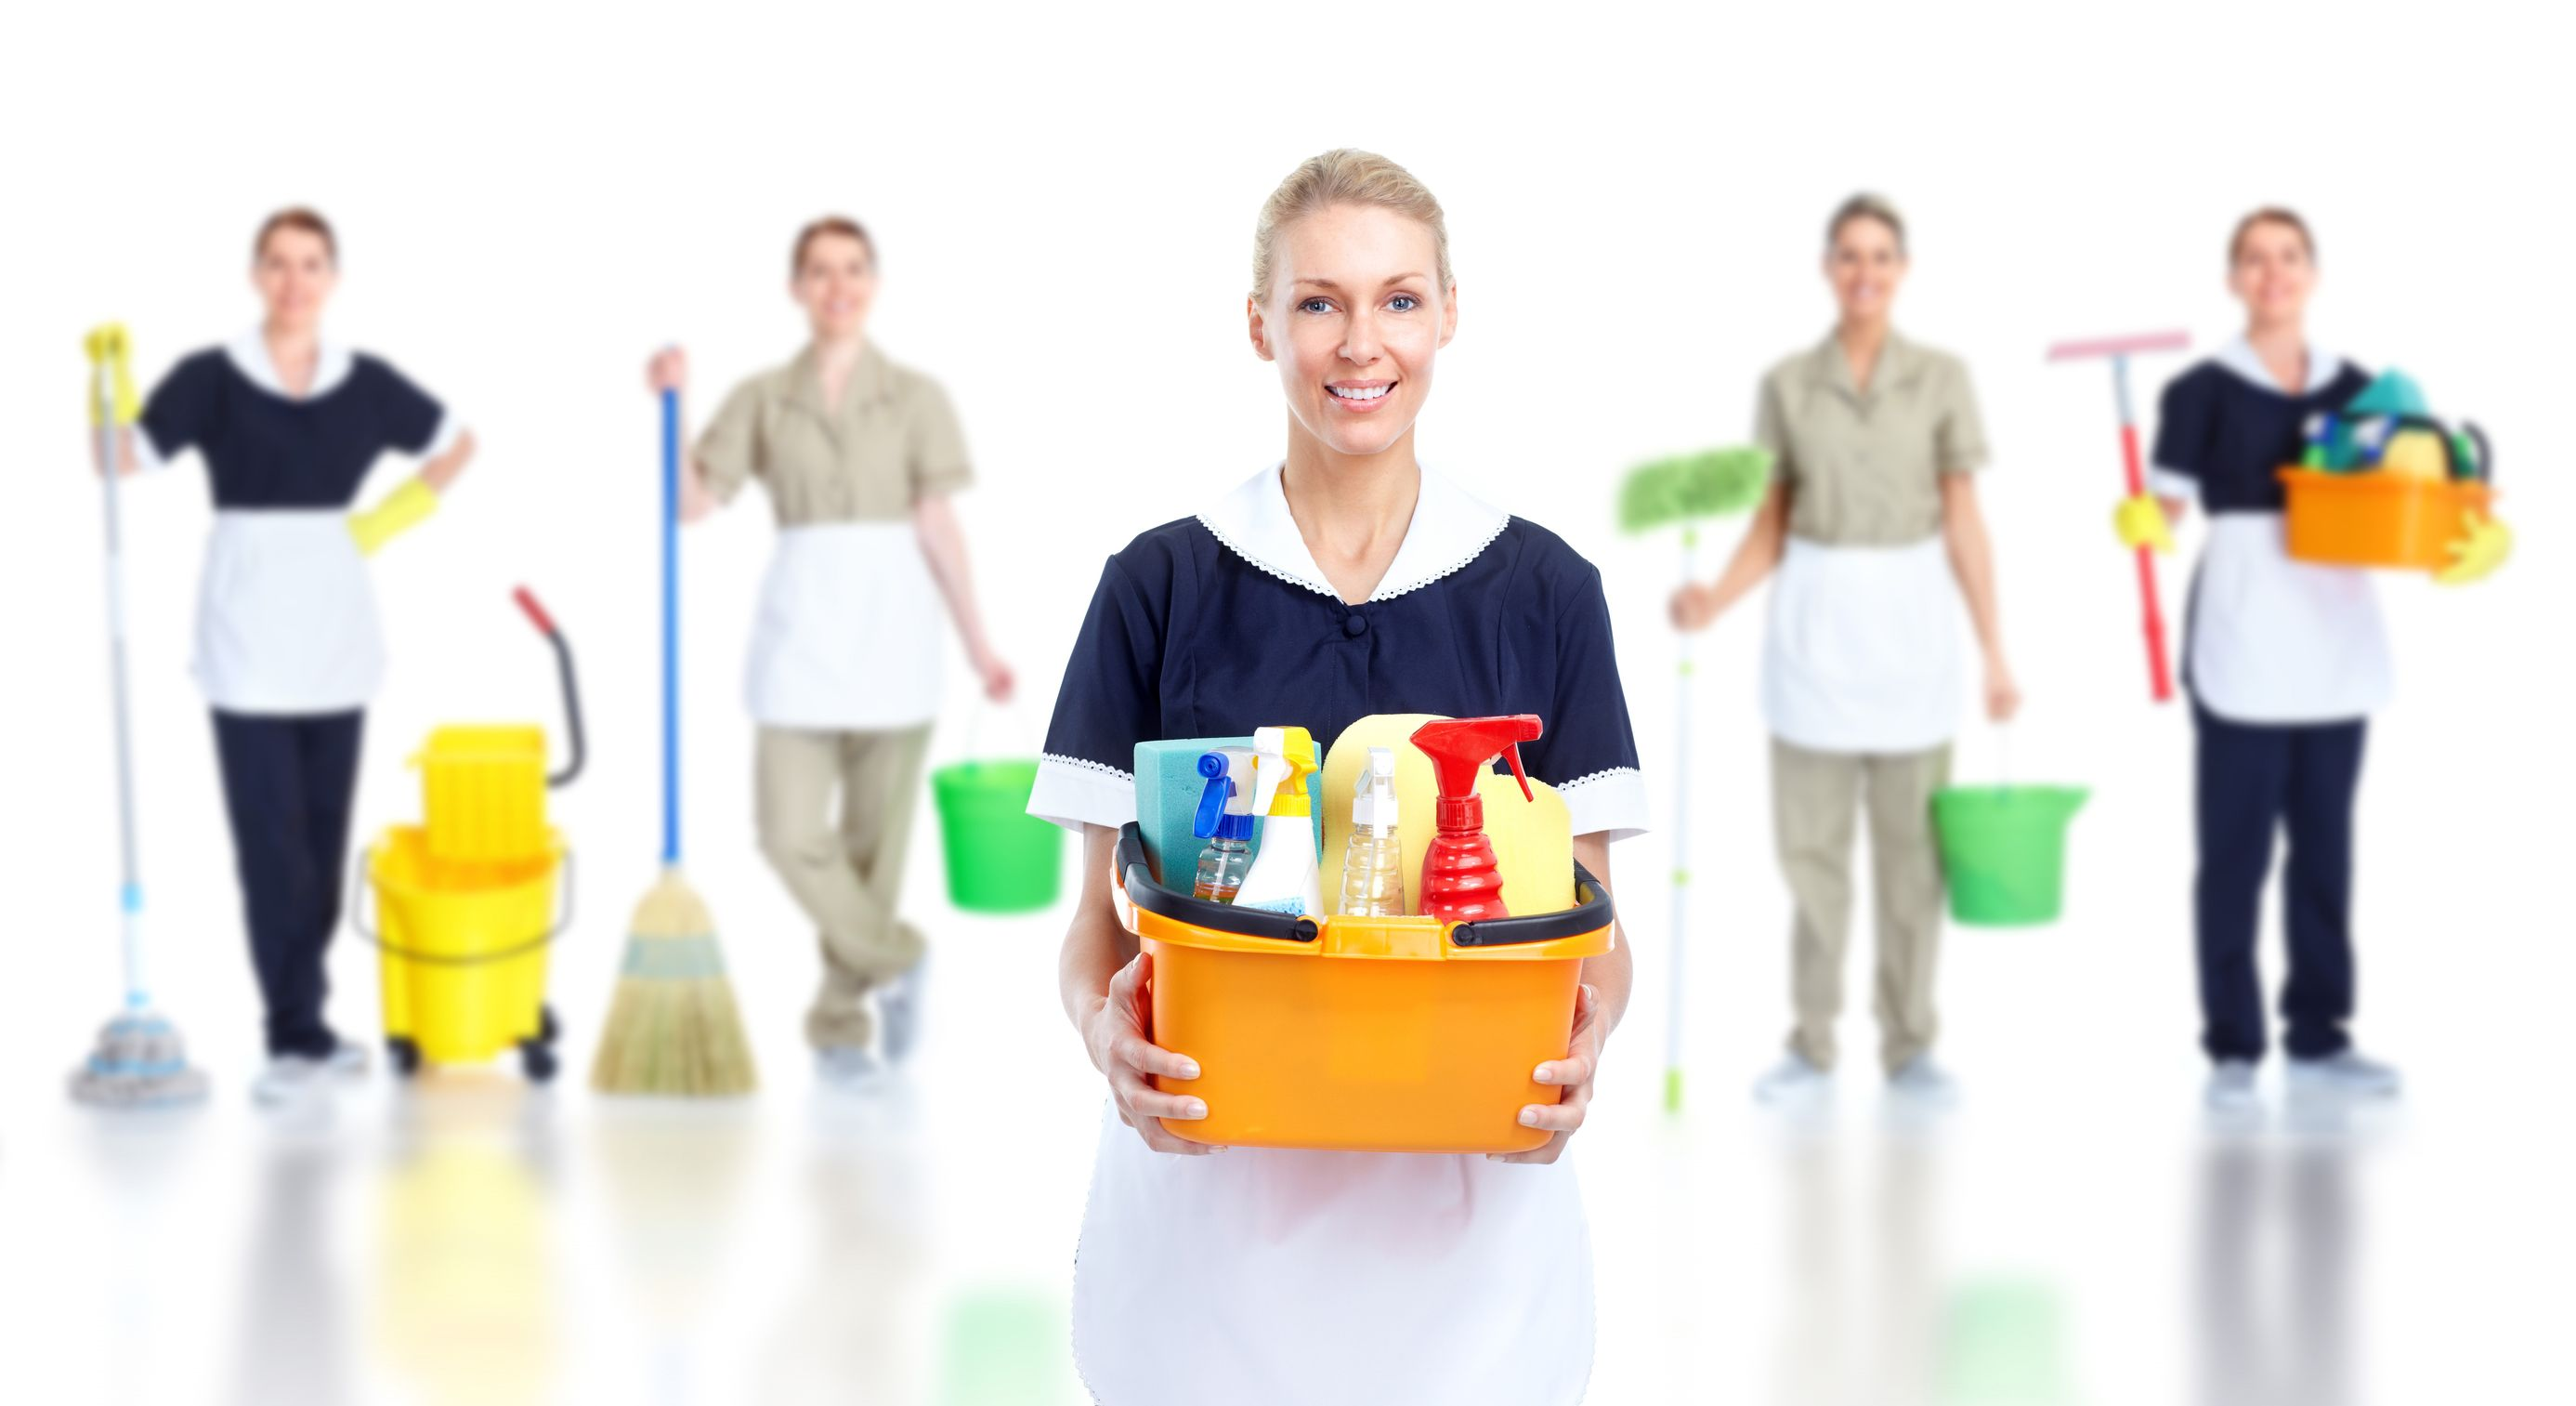 sofa cleaning services in chennai small double bed asda carpet shampooing housekeeping service property